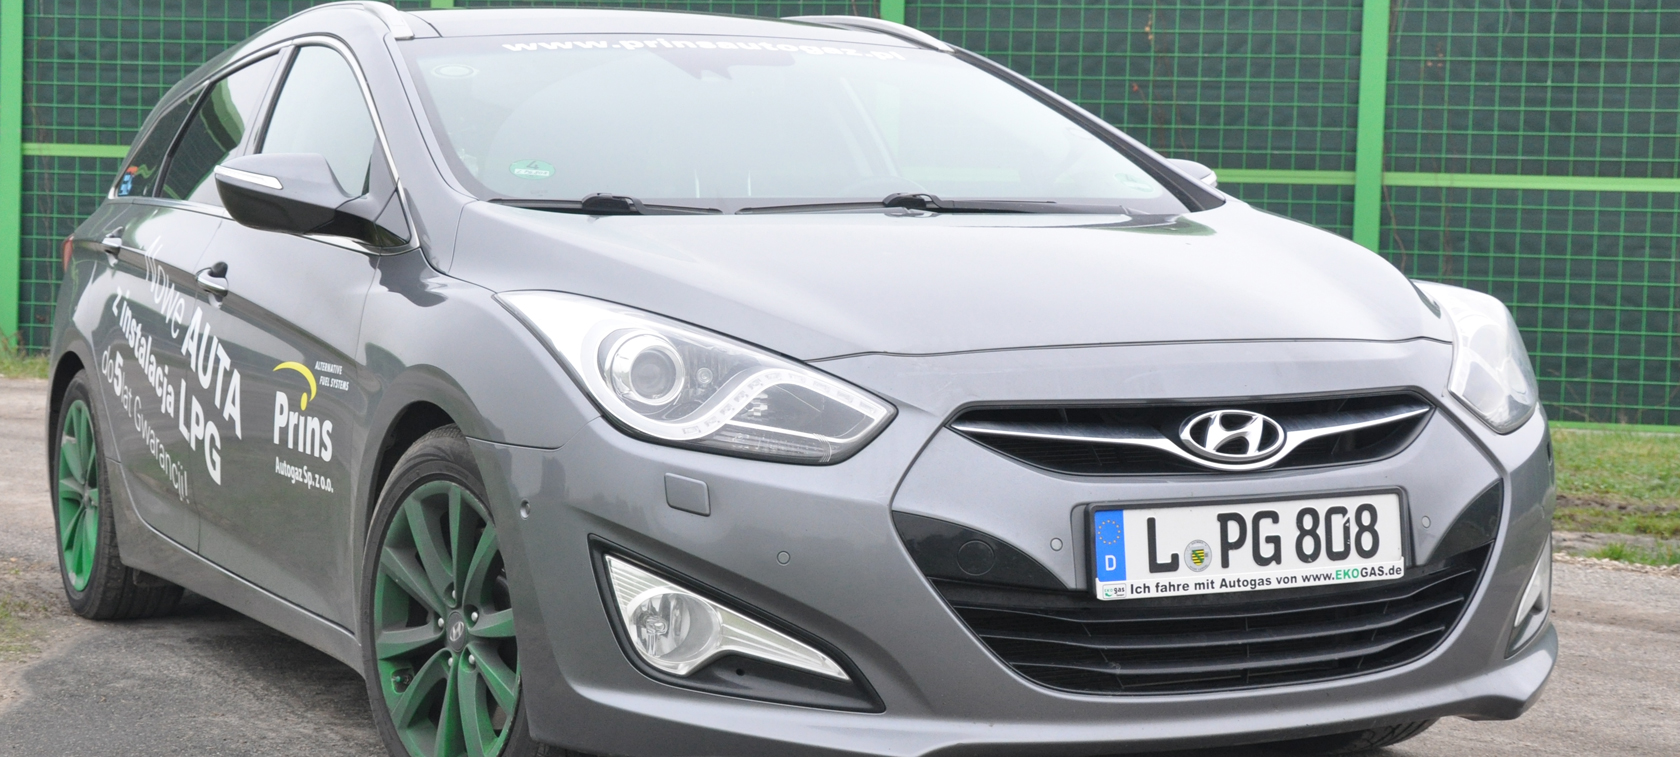 Hyundai i40 CW LPG - direct incentive